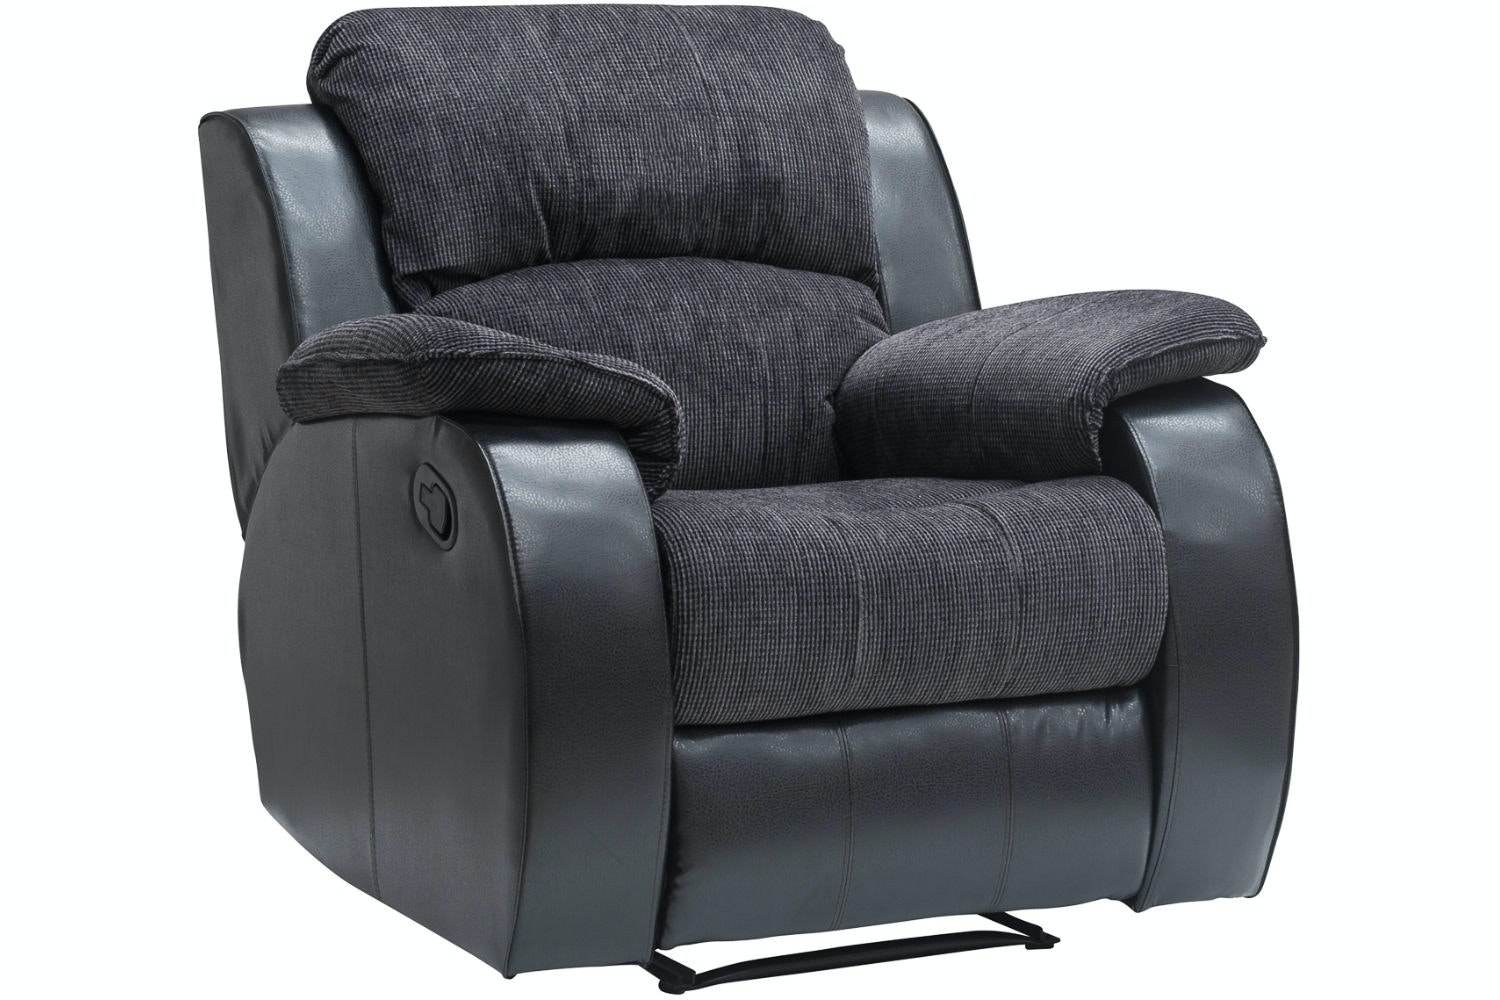 Kayde Recliner Chair